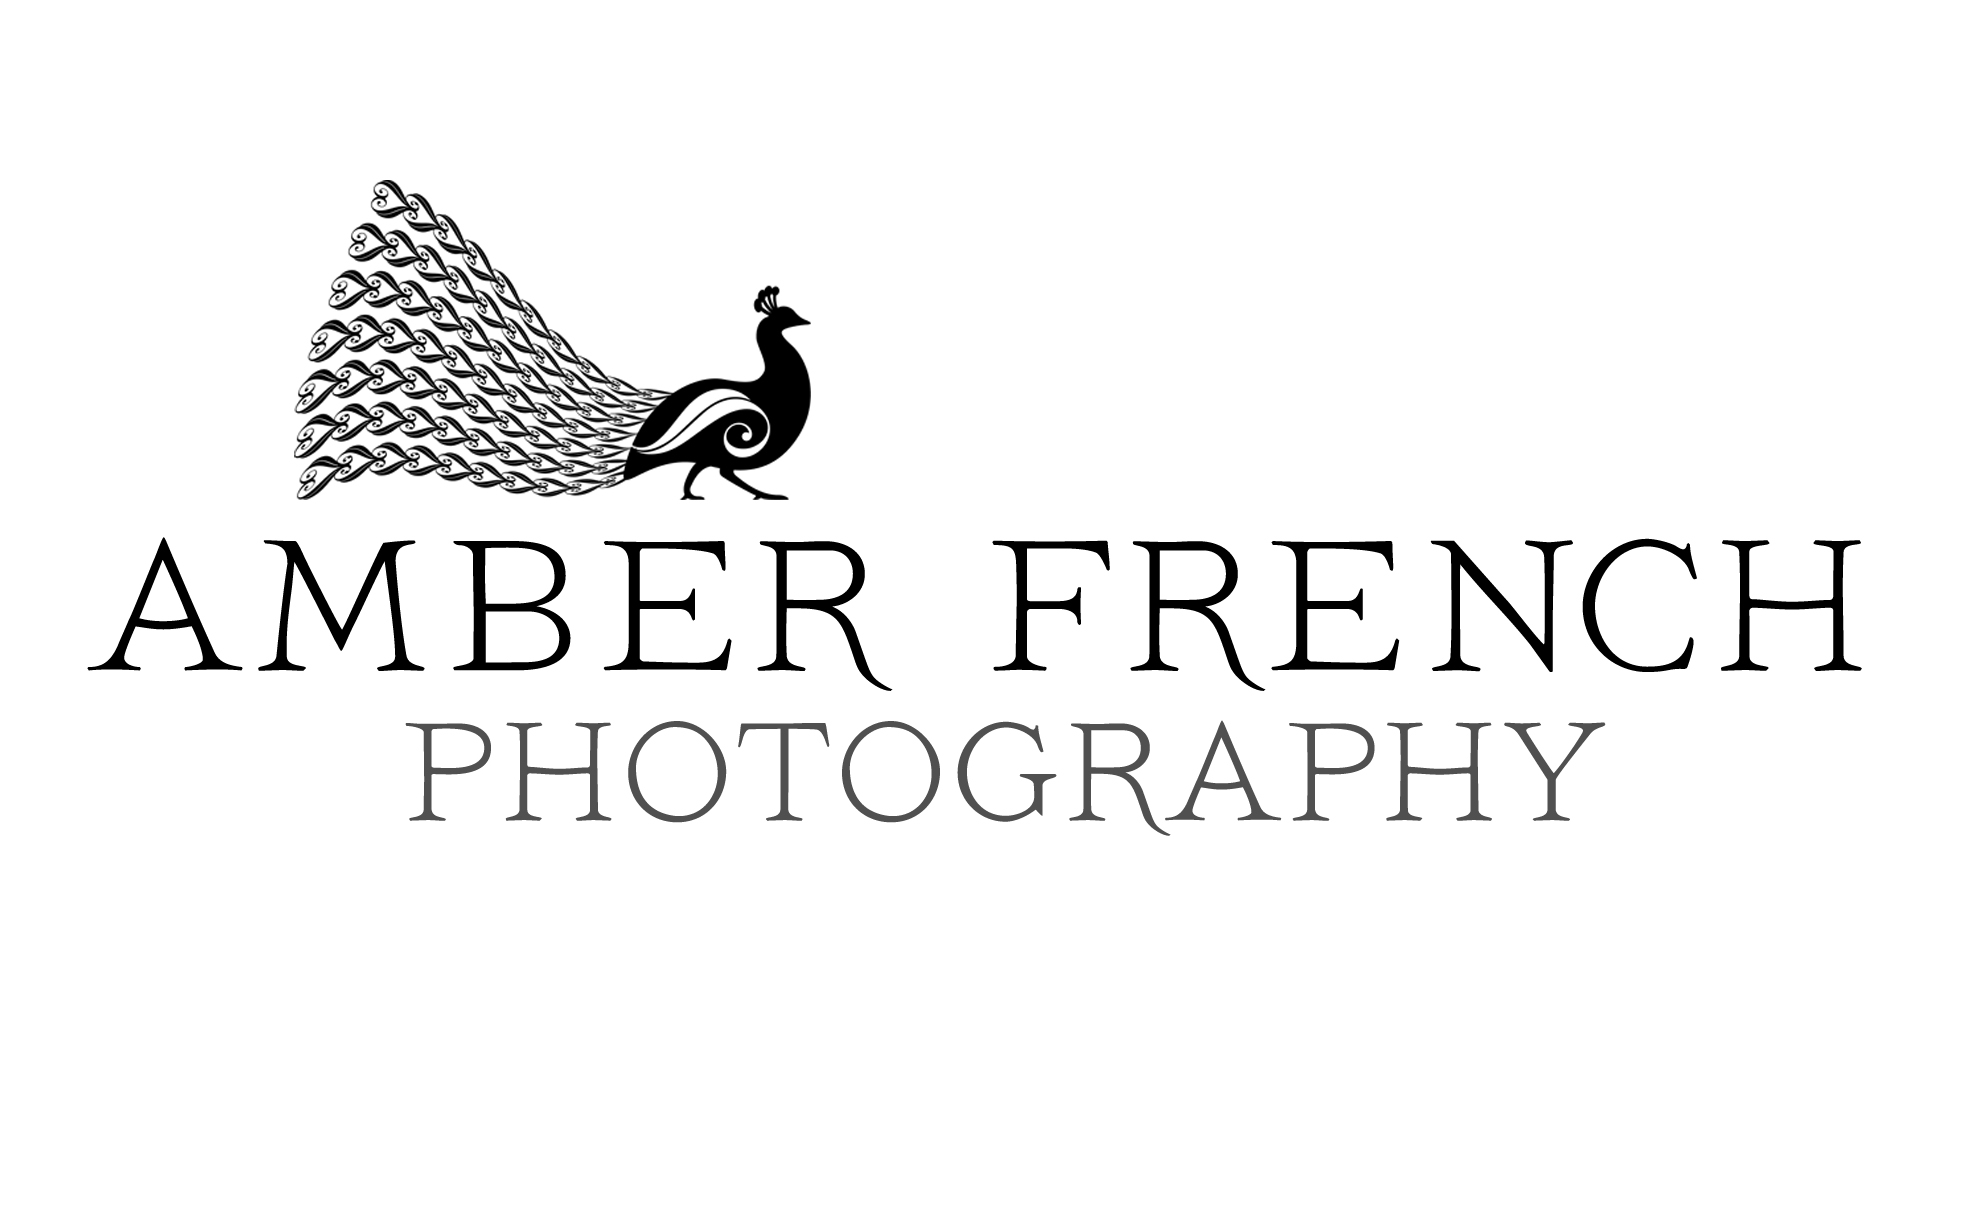 Amber French Photography